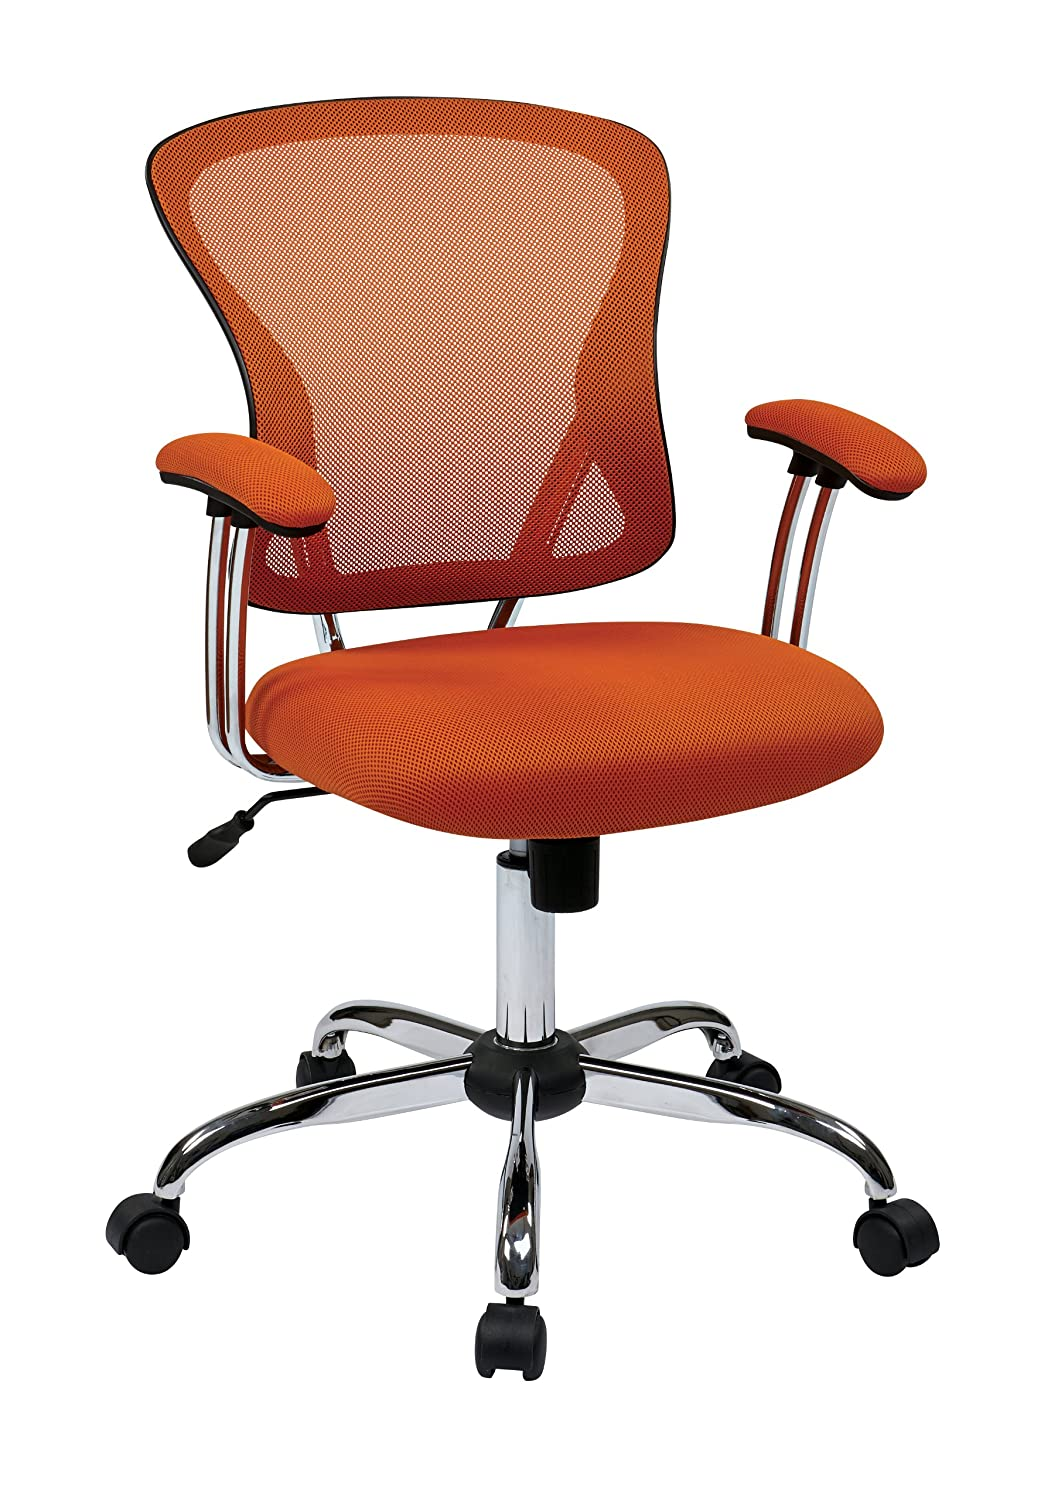 AVE SIX Juliana Mesh Back and Seat Adjustable Task Chair with Padded Arms and Chrome Accents, Orange JUL26-18